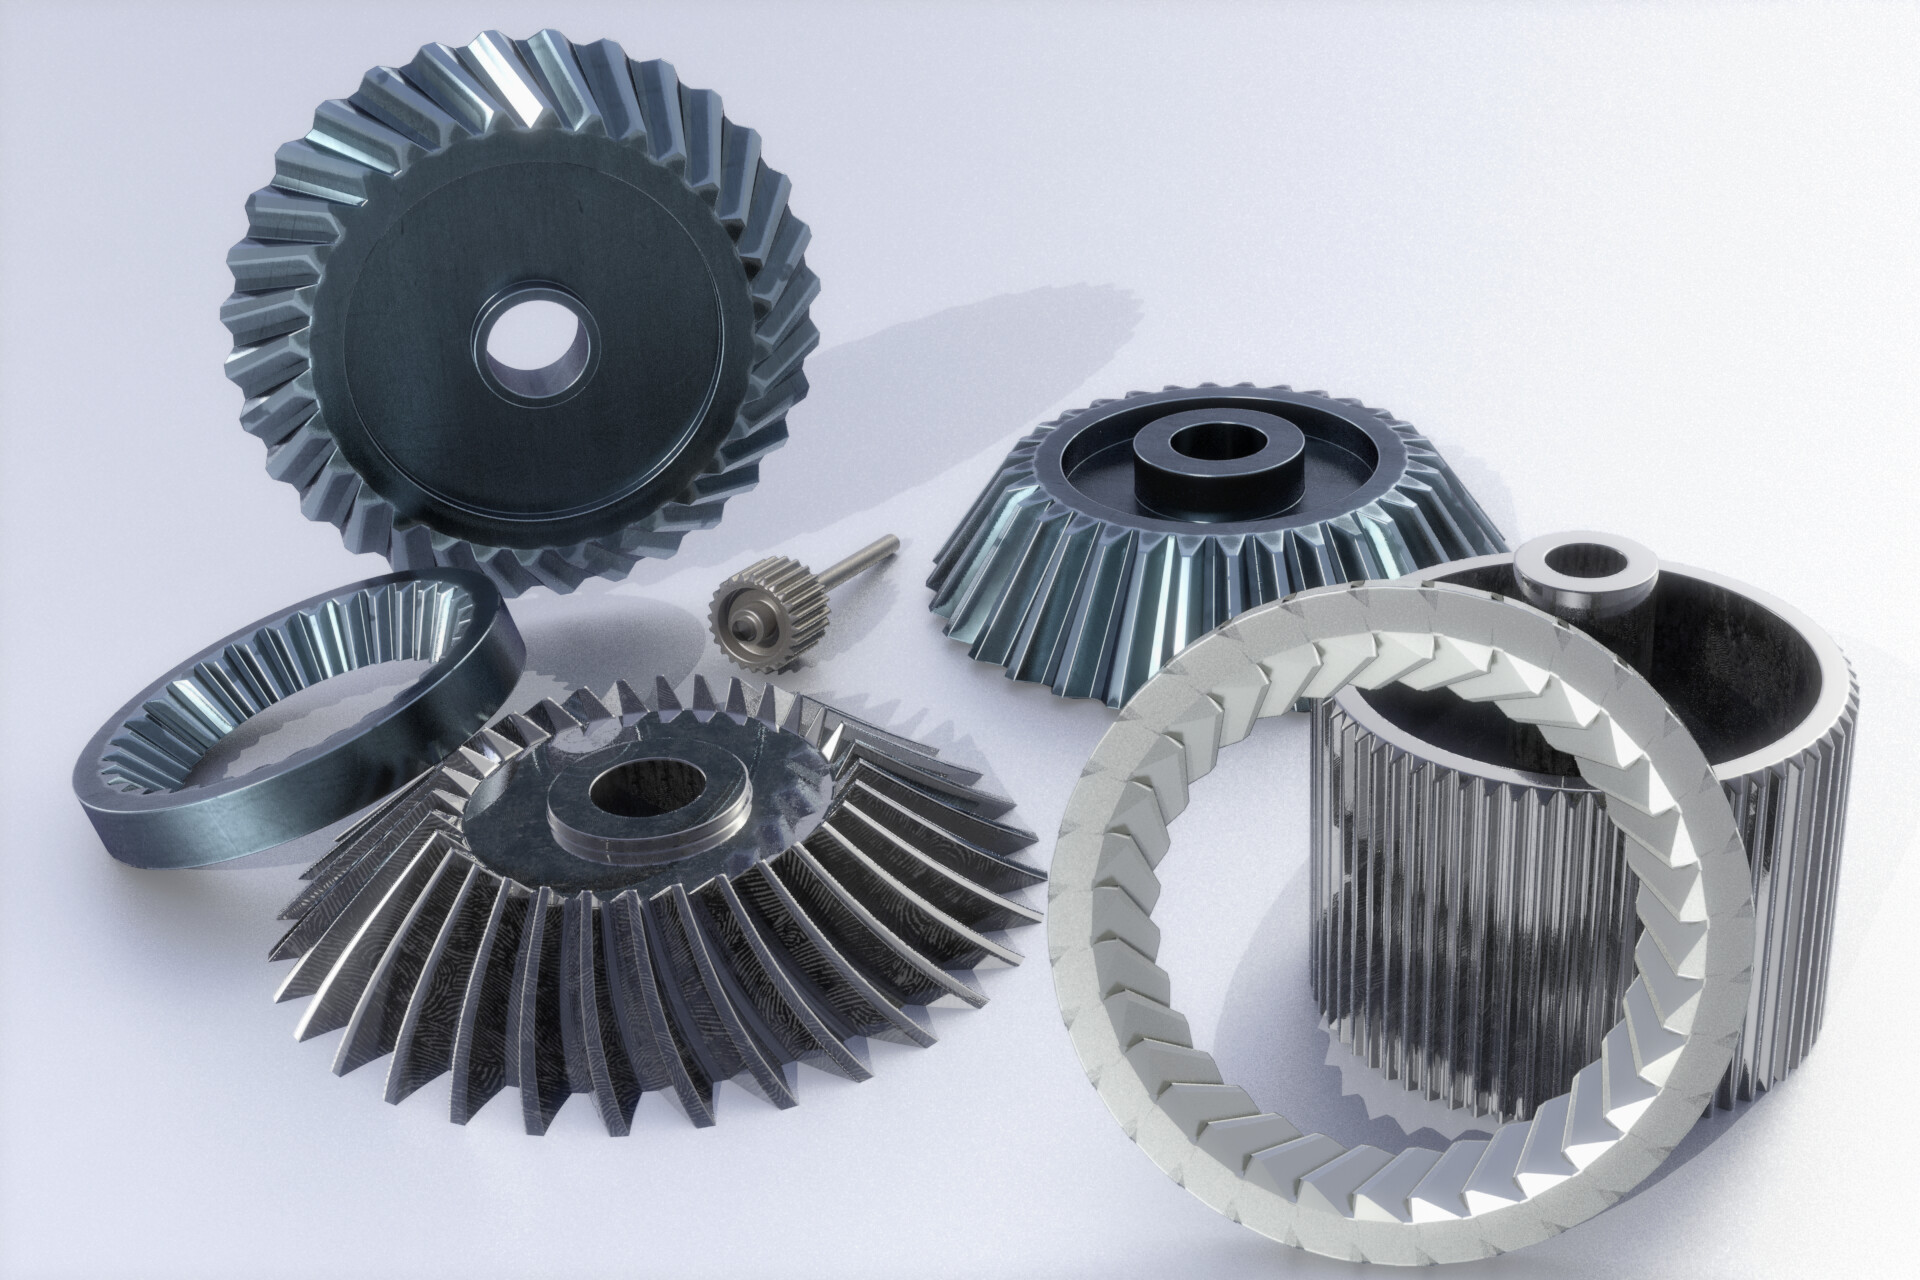 Procedural gears with all procedural texturing from a long time ago!